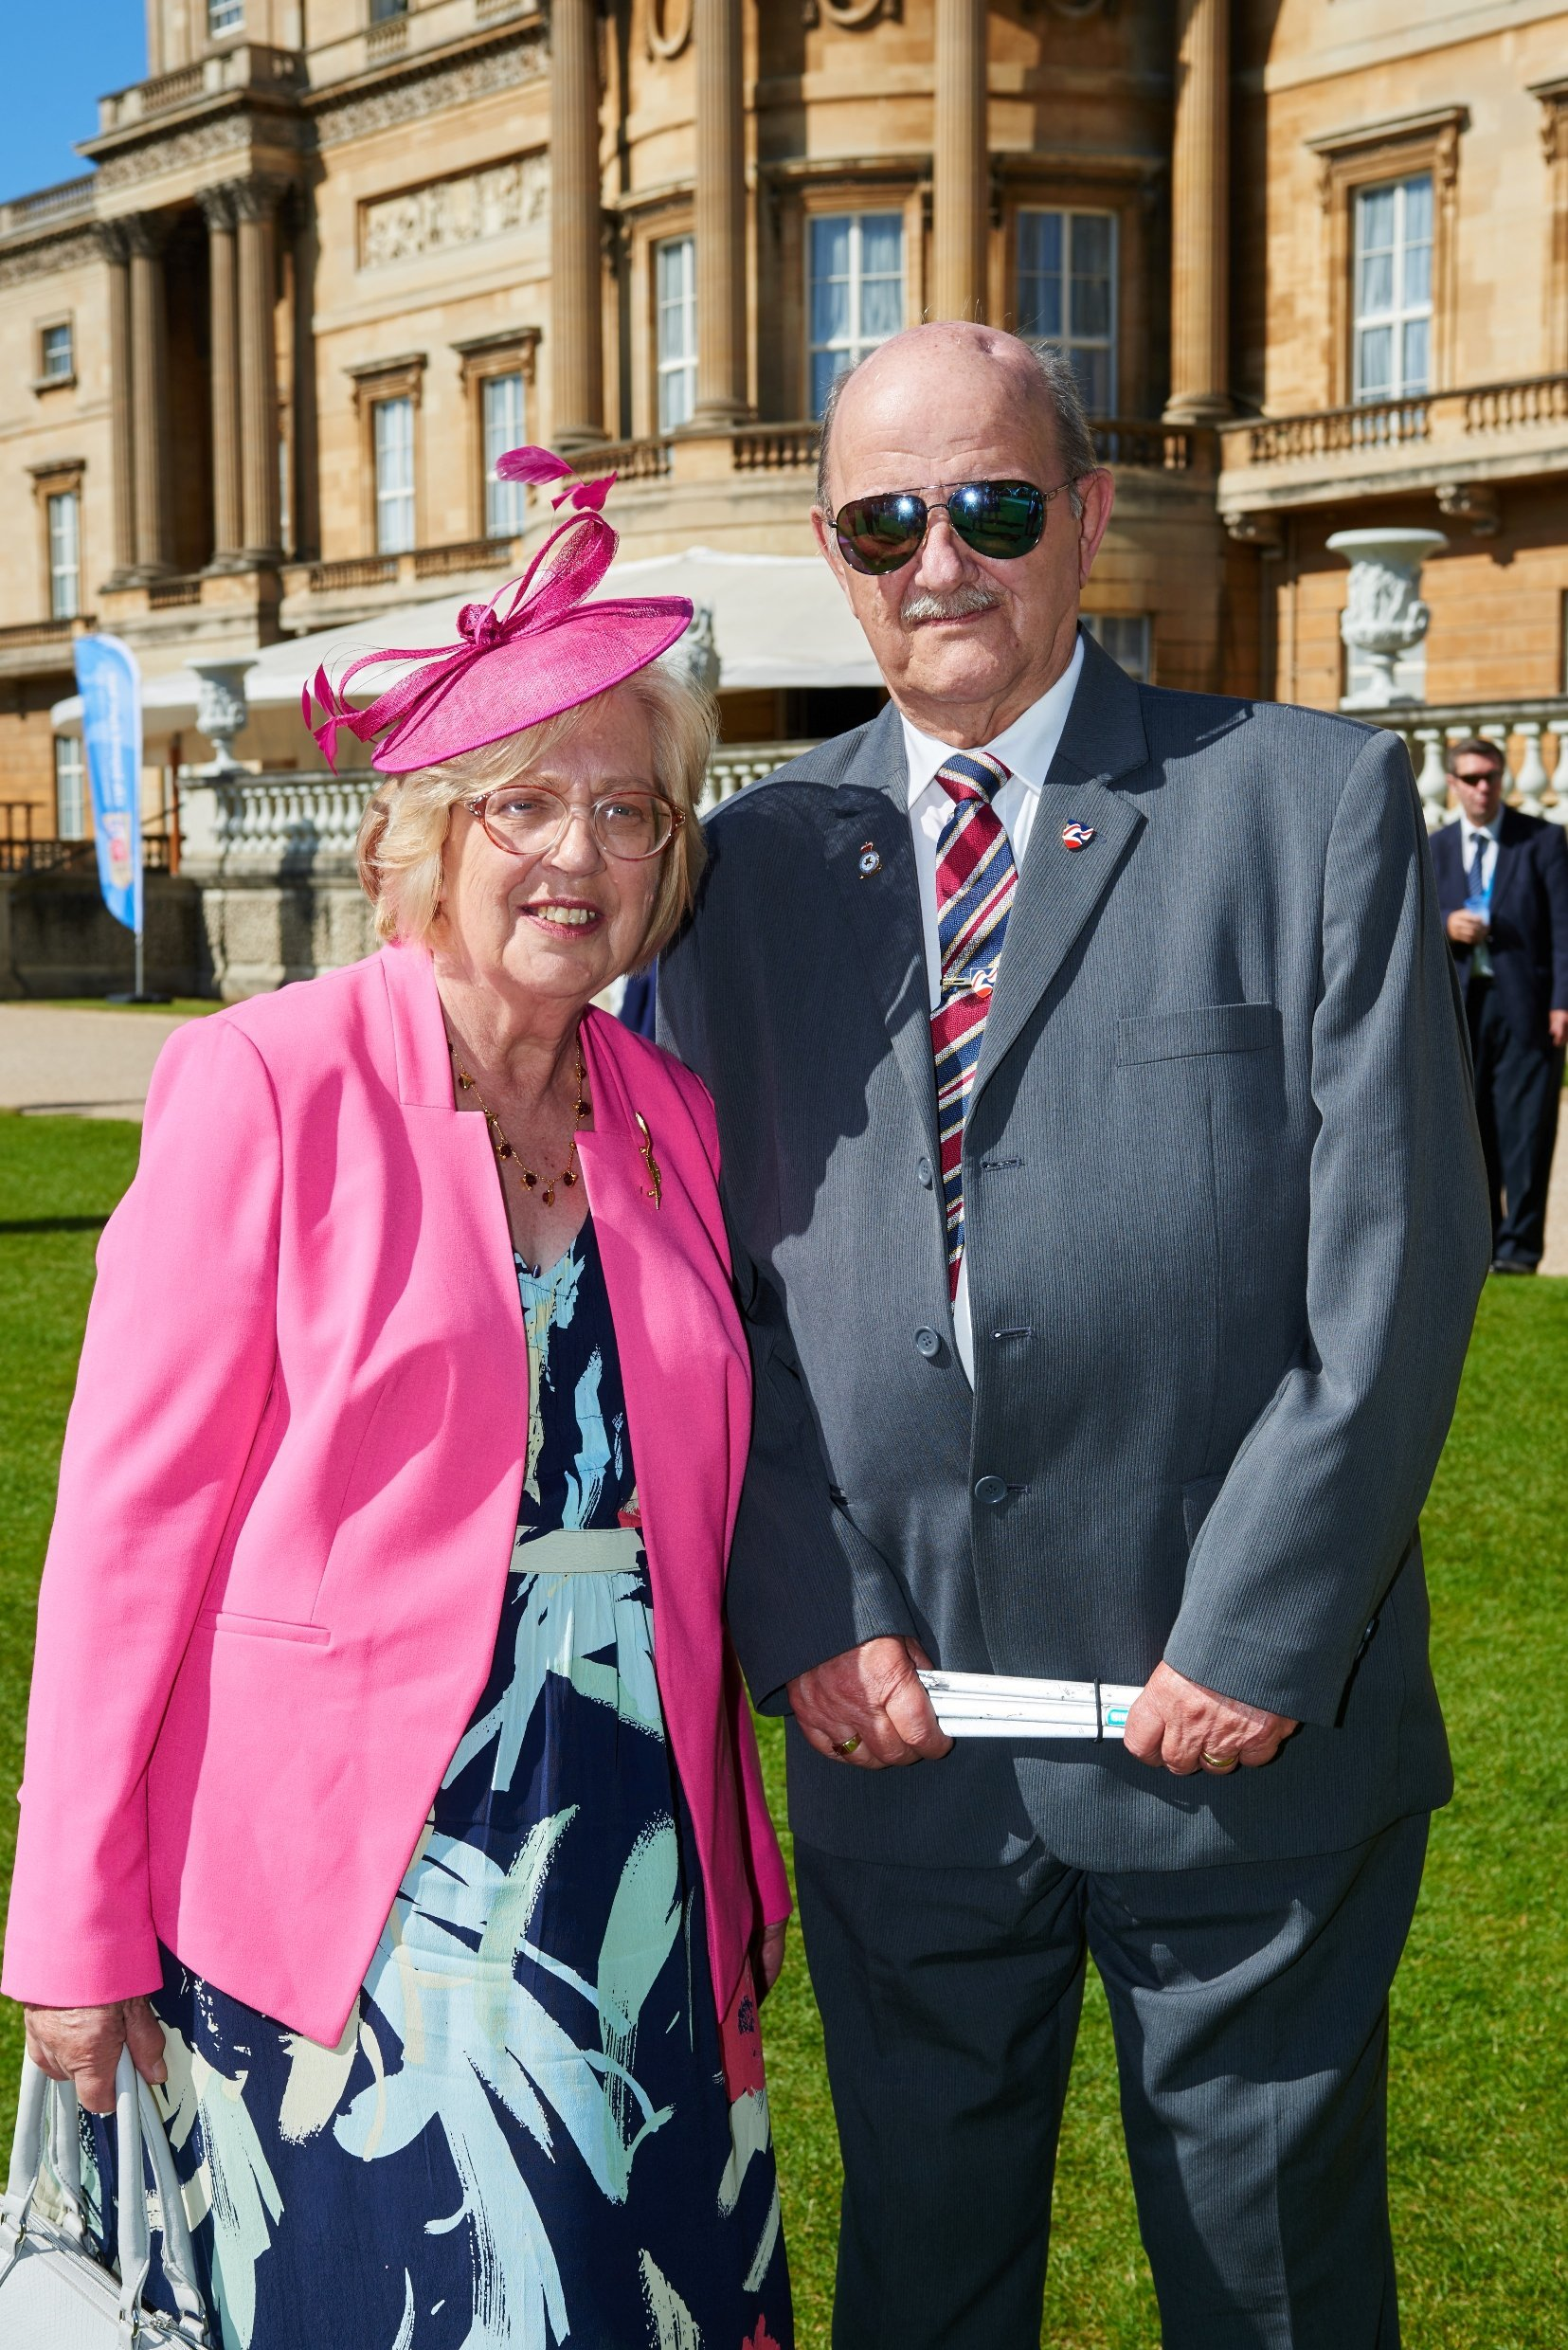 David Yeomans, 79, attended a Buckingham Palace garden party with his wife and more than 1,000 other veterans to celebrate Blind Veterans UK's 100 years of support to blind and vision-impaired ex-servicemen and women